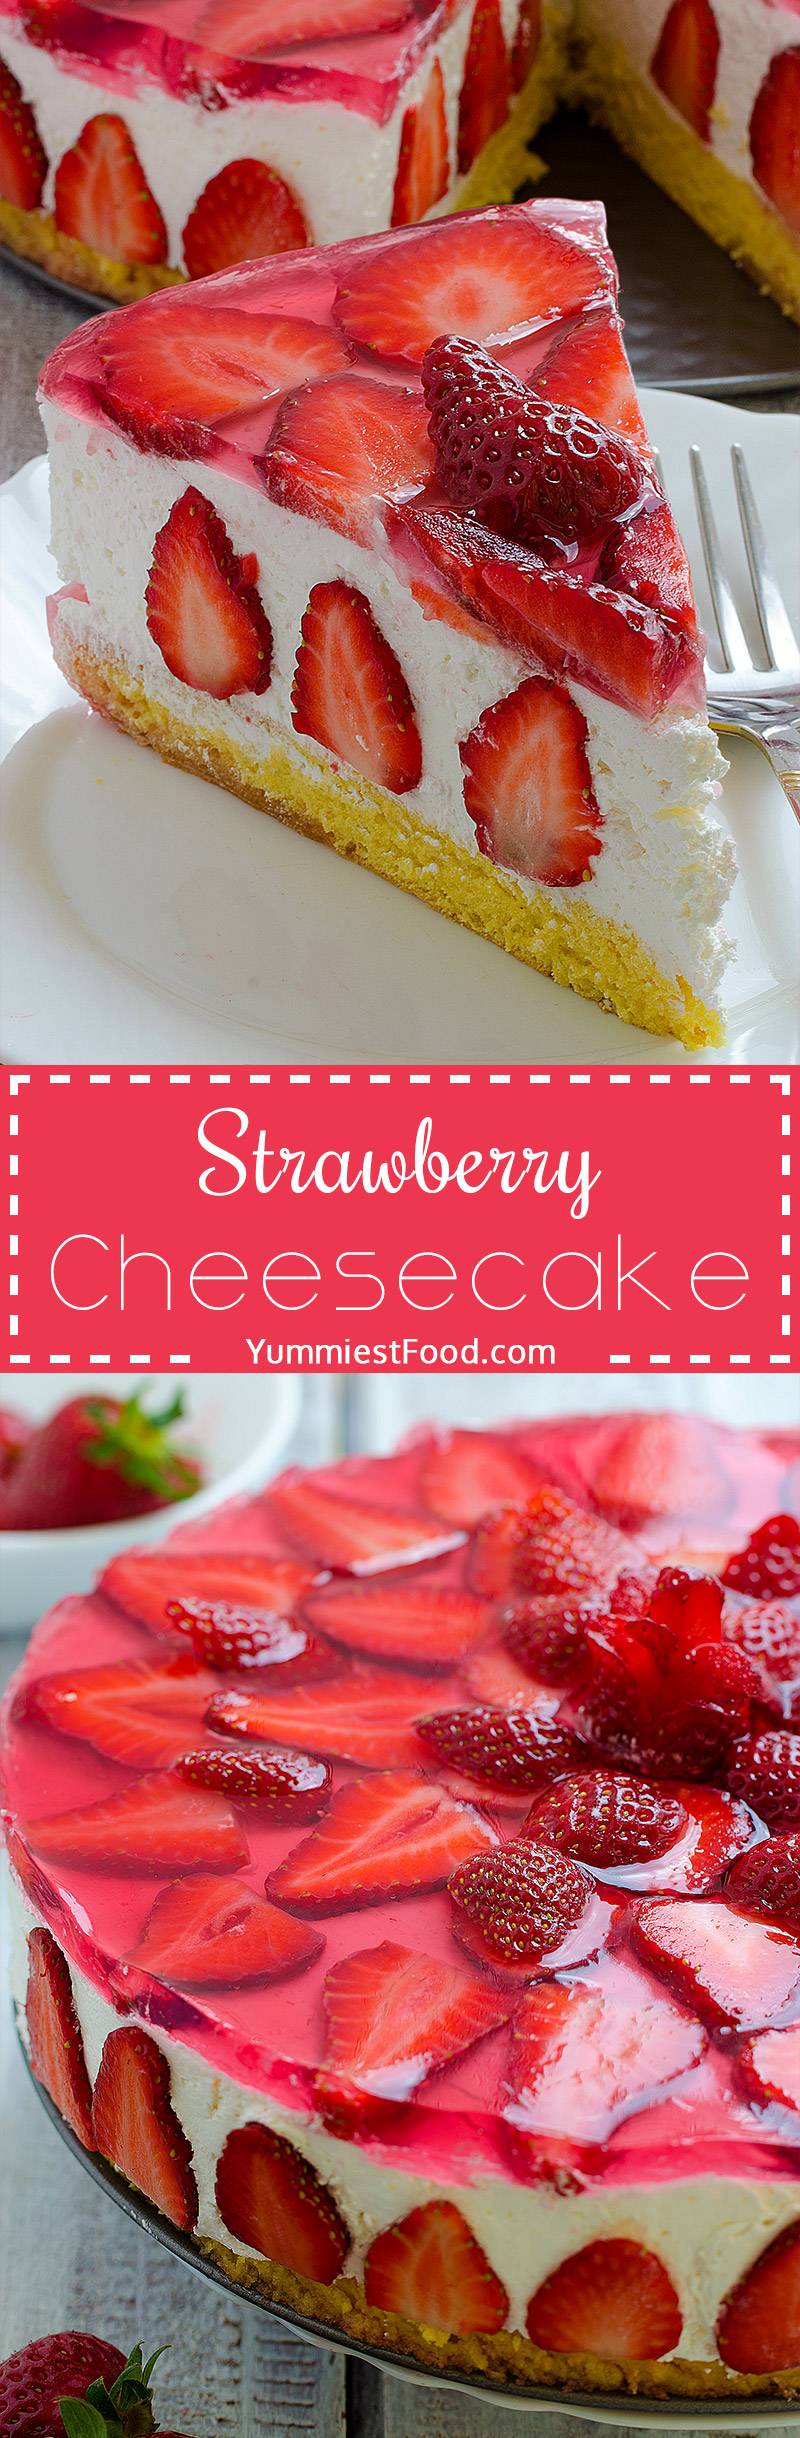 Strawberry Cheesecake - This cake with cheese and strawberry combination is very tasty, delicious, quick and very refreshing.